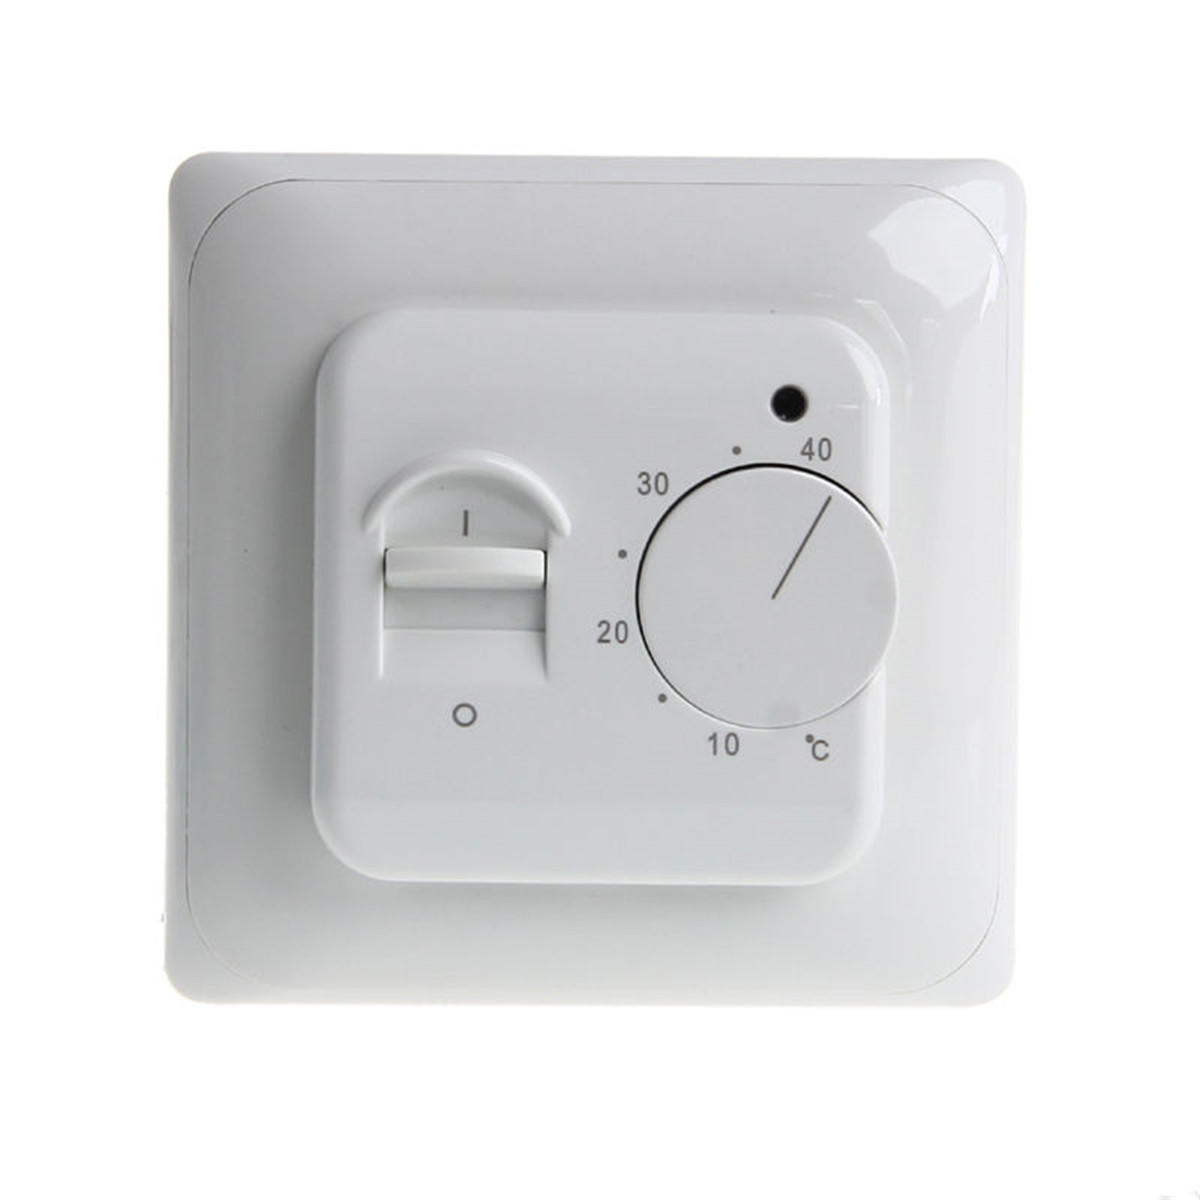 Heating Thermostat Floor Heating Thermostat Air Condition Temperature Controller Switch 16a 220v